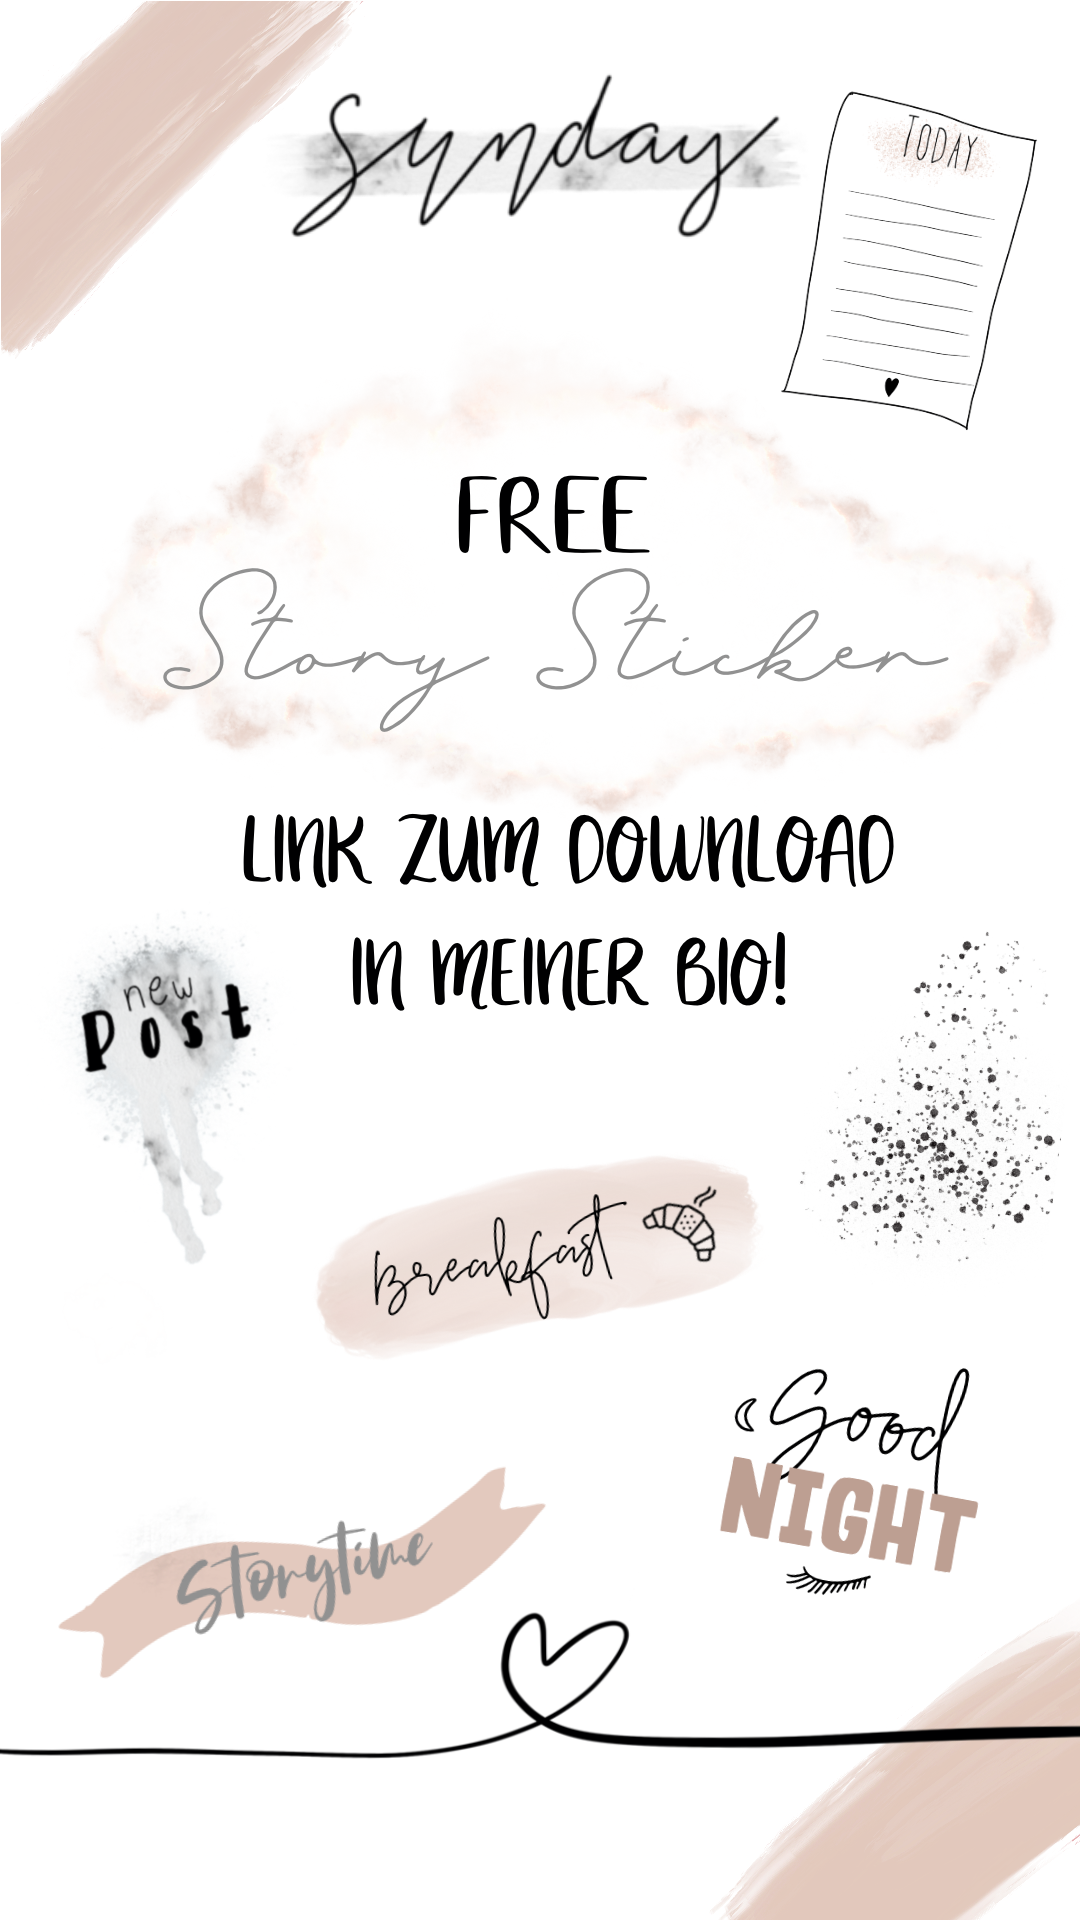 free story sticker instagram free story sticker link in my bio story elements download kos in 2020 sticker download free stories creative instagram photo ideas free story sticker instagram free